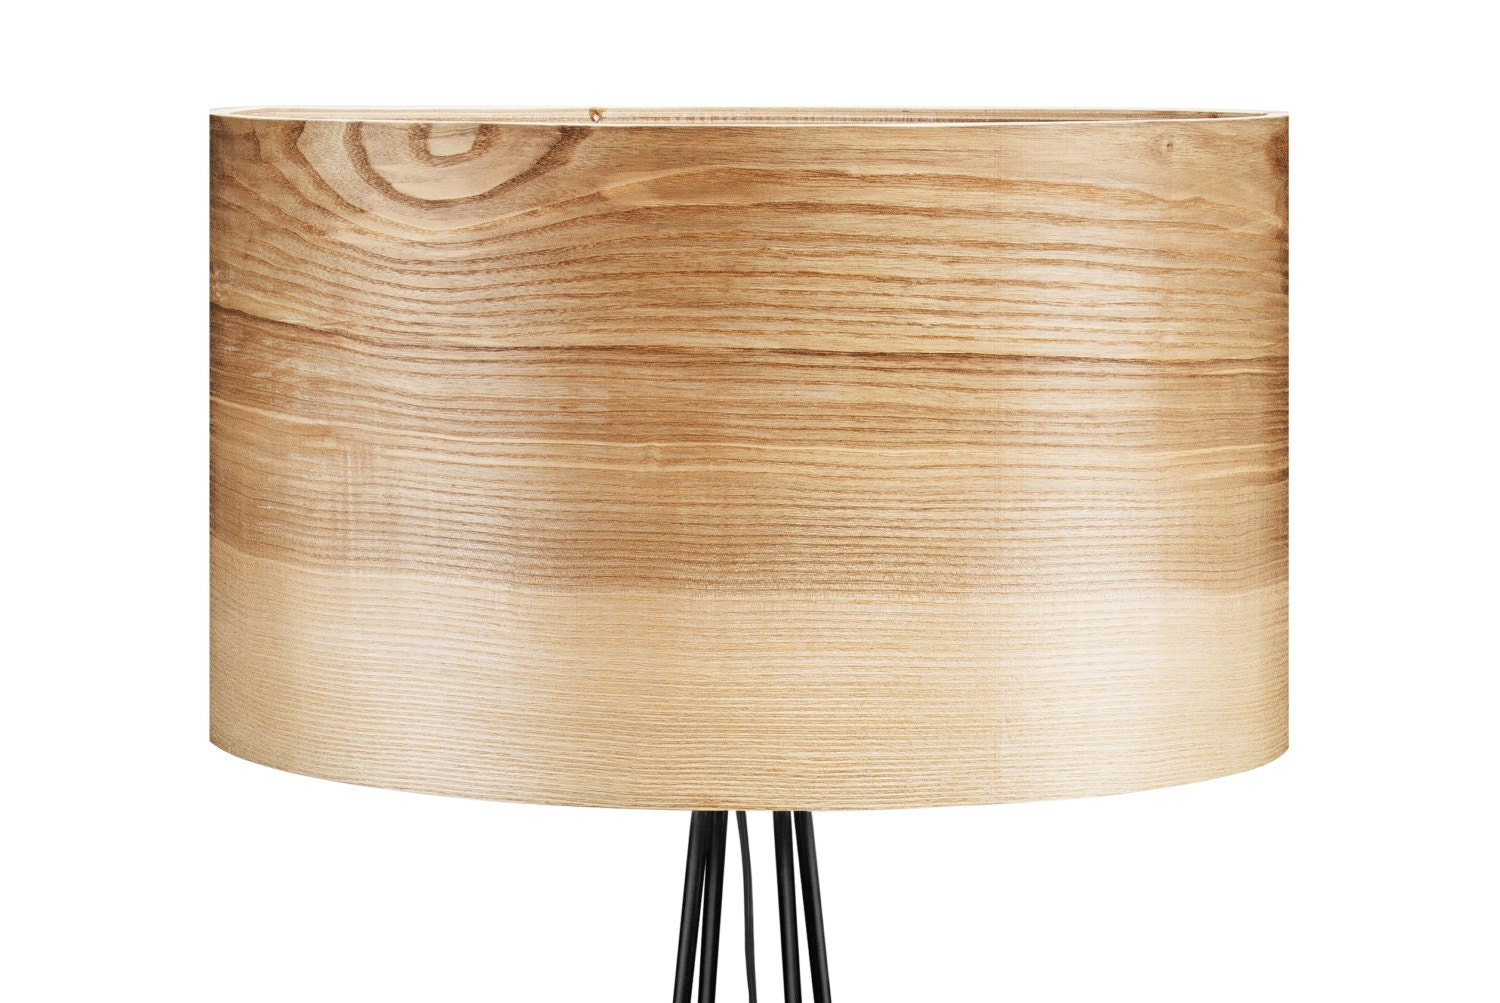 floor lamp with veneer lamp shade unique lamp natural wood. Black Bedroom Furniture Sets. Home Design Ideas